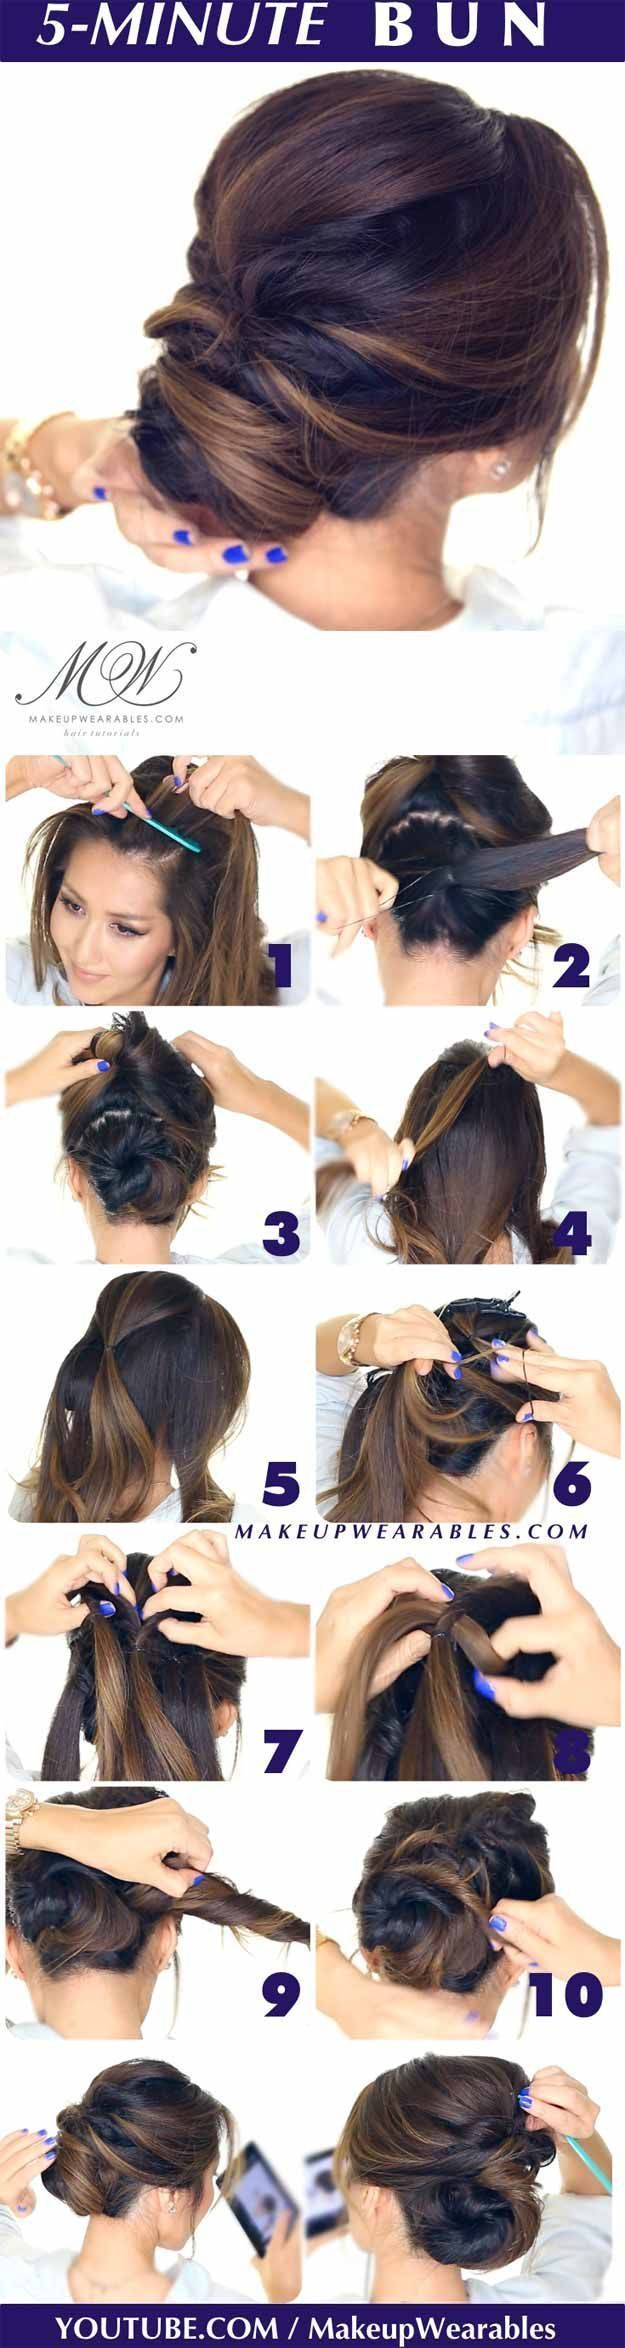 Best hairstyles for your s minute romantic updo bun hair dos